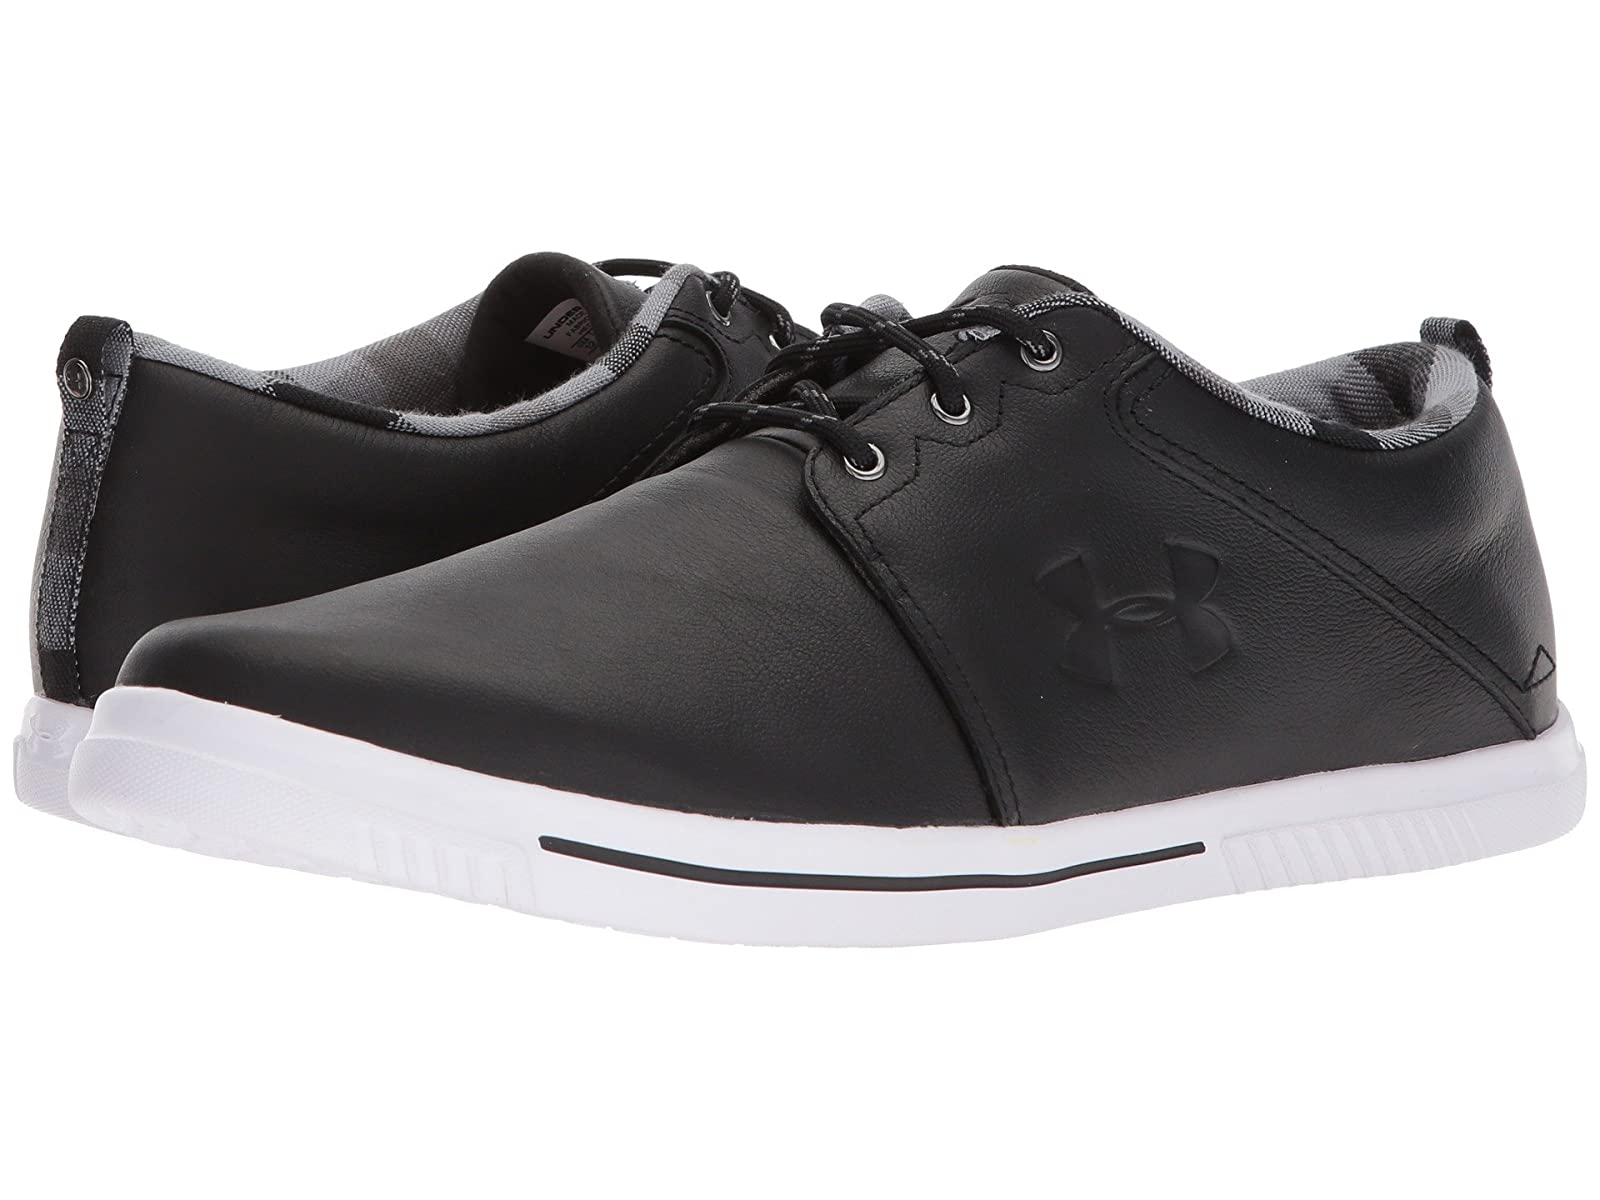 Under Armour Street Encounter LTH IVCheap and distinctive eye-catching shoes